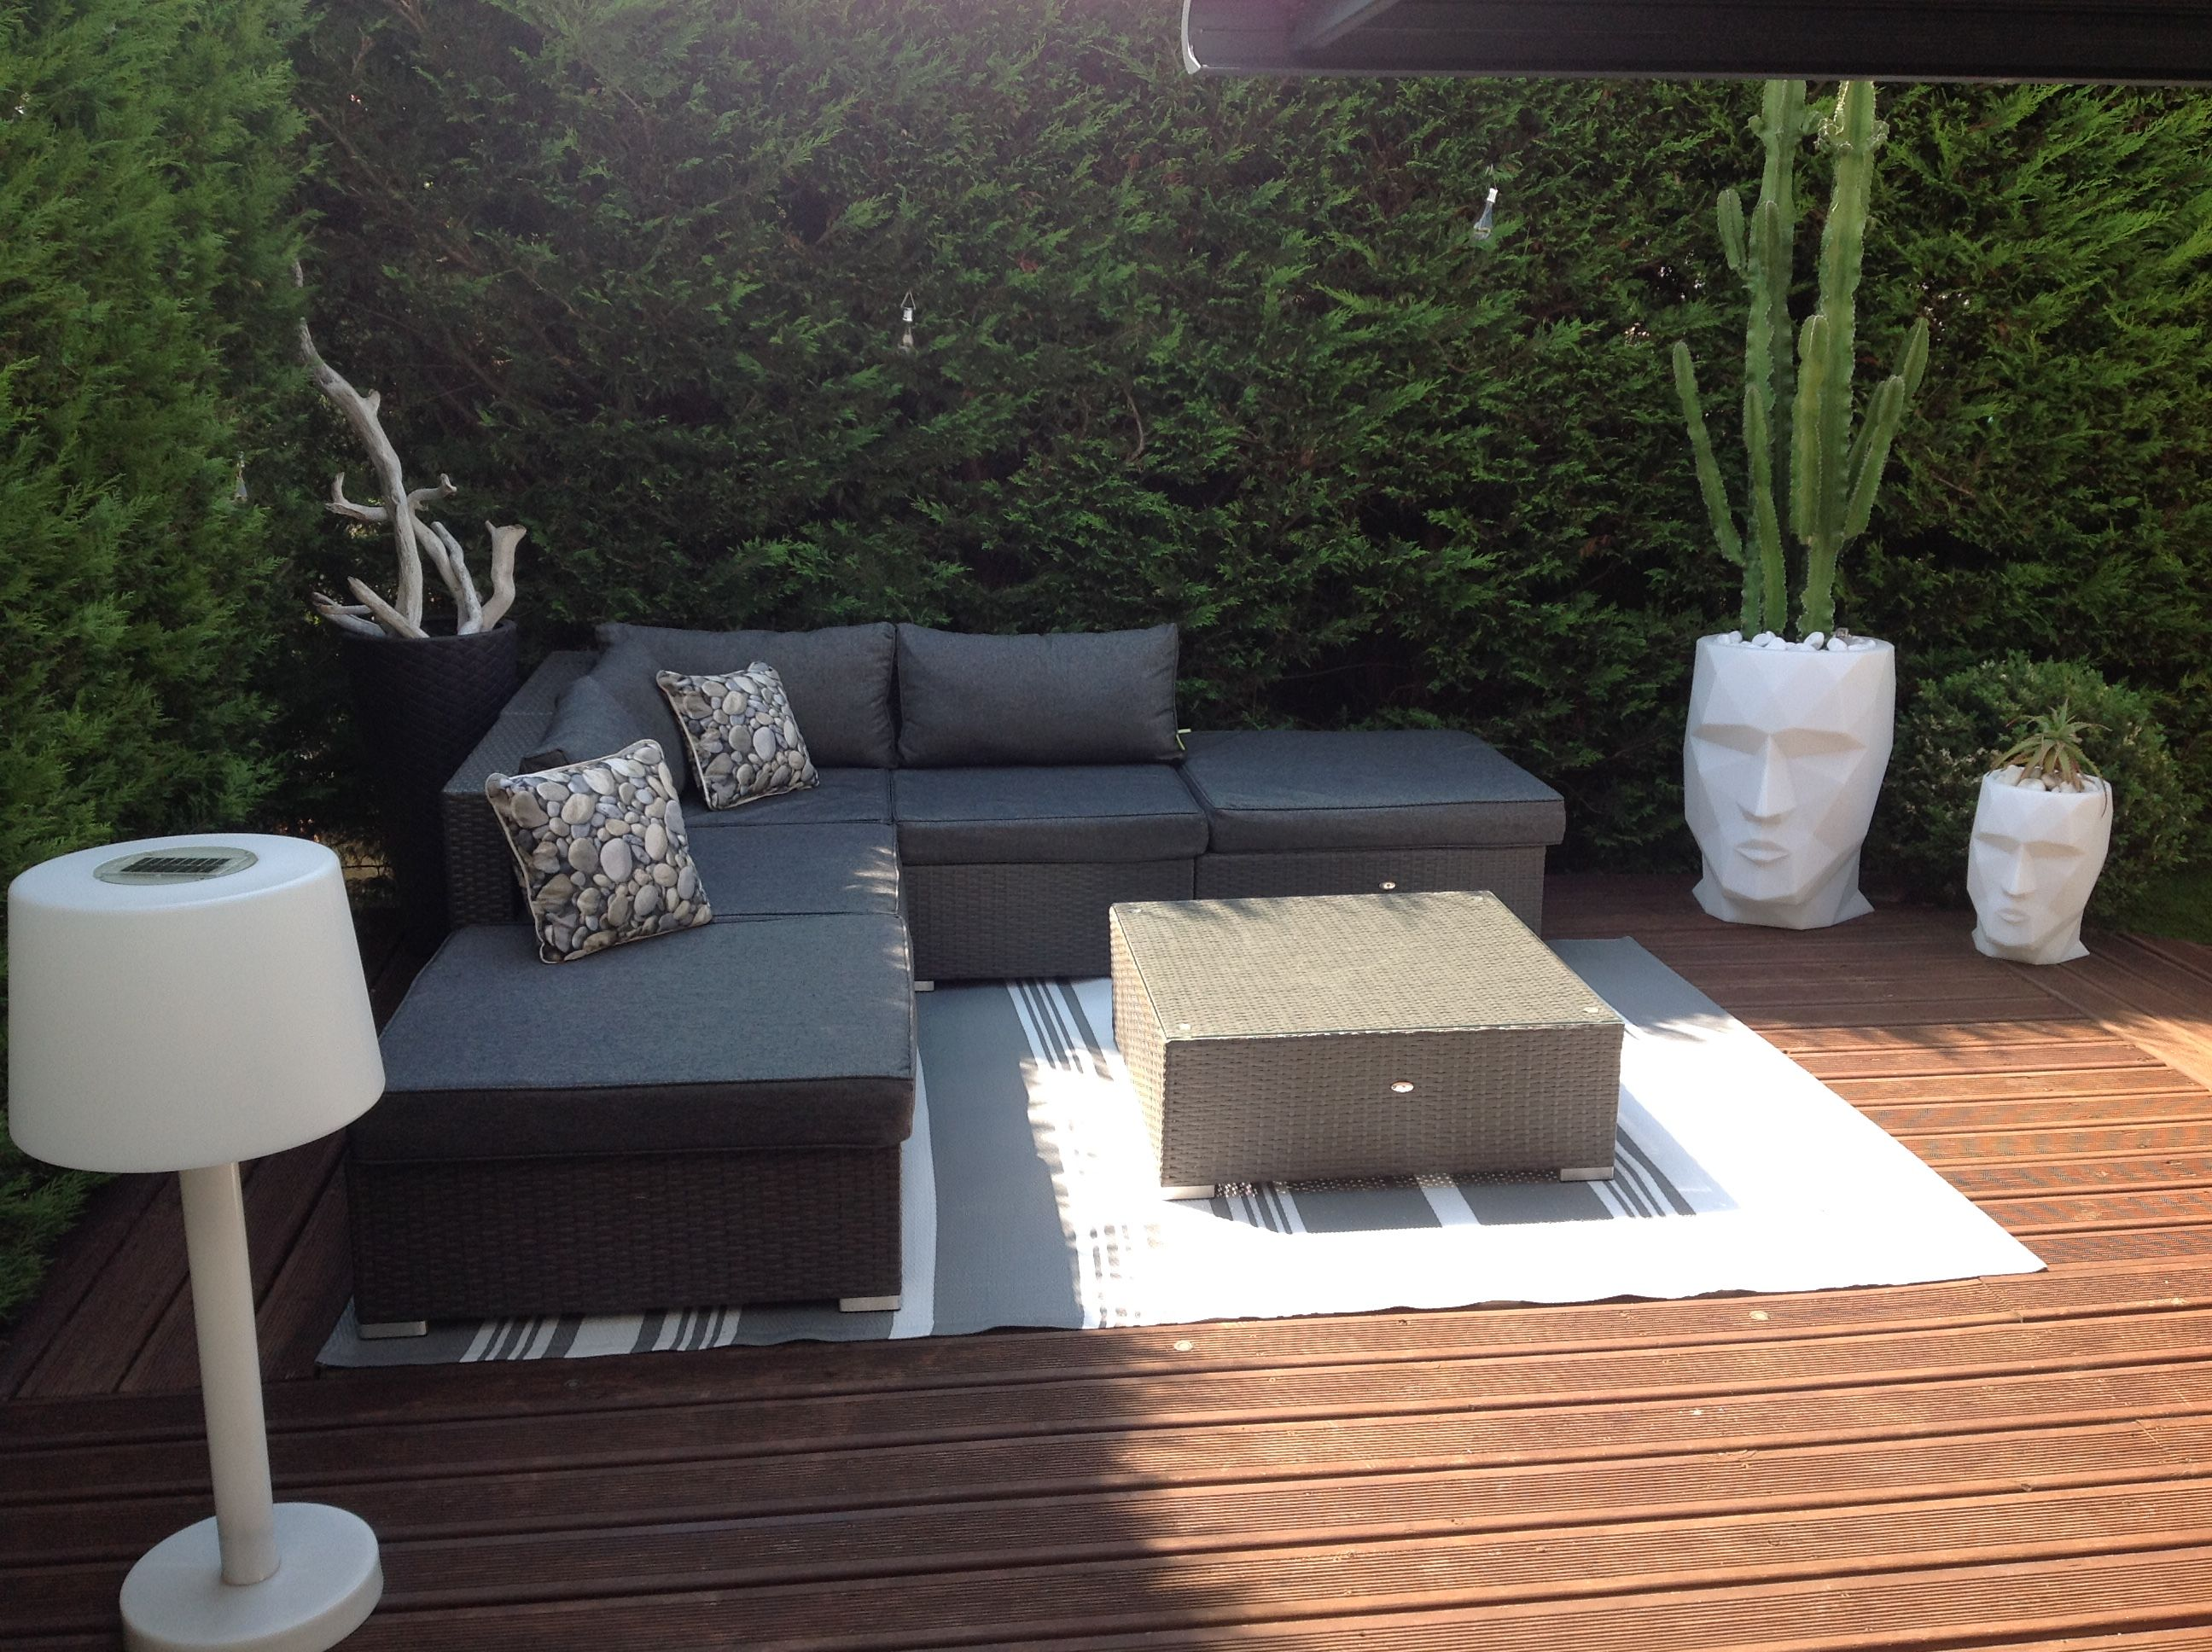 Milano salon de jardin 7 places en r sine tress e for Mobilier jardin resine